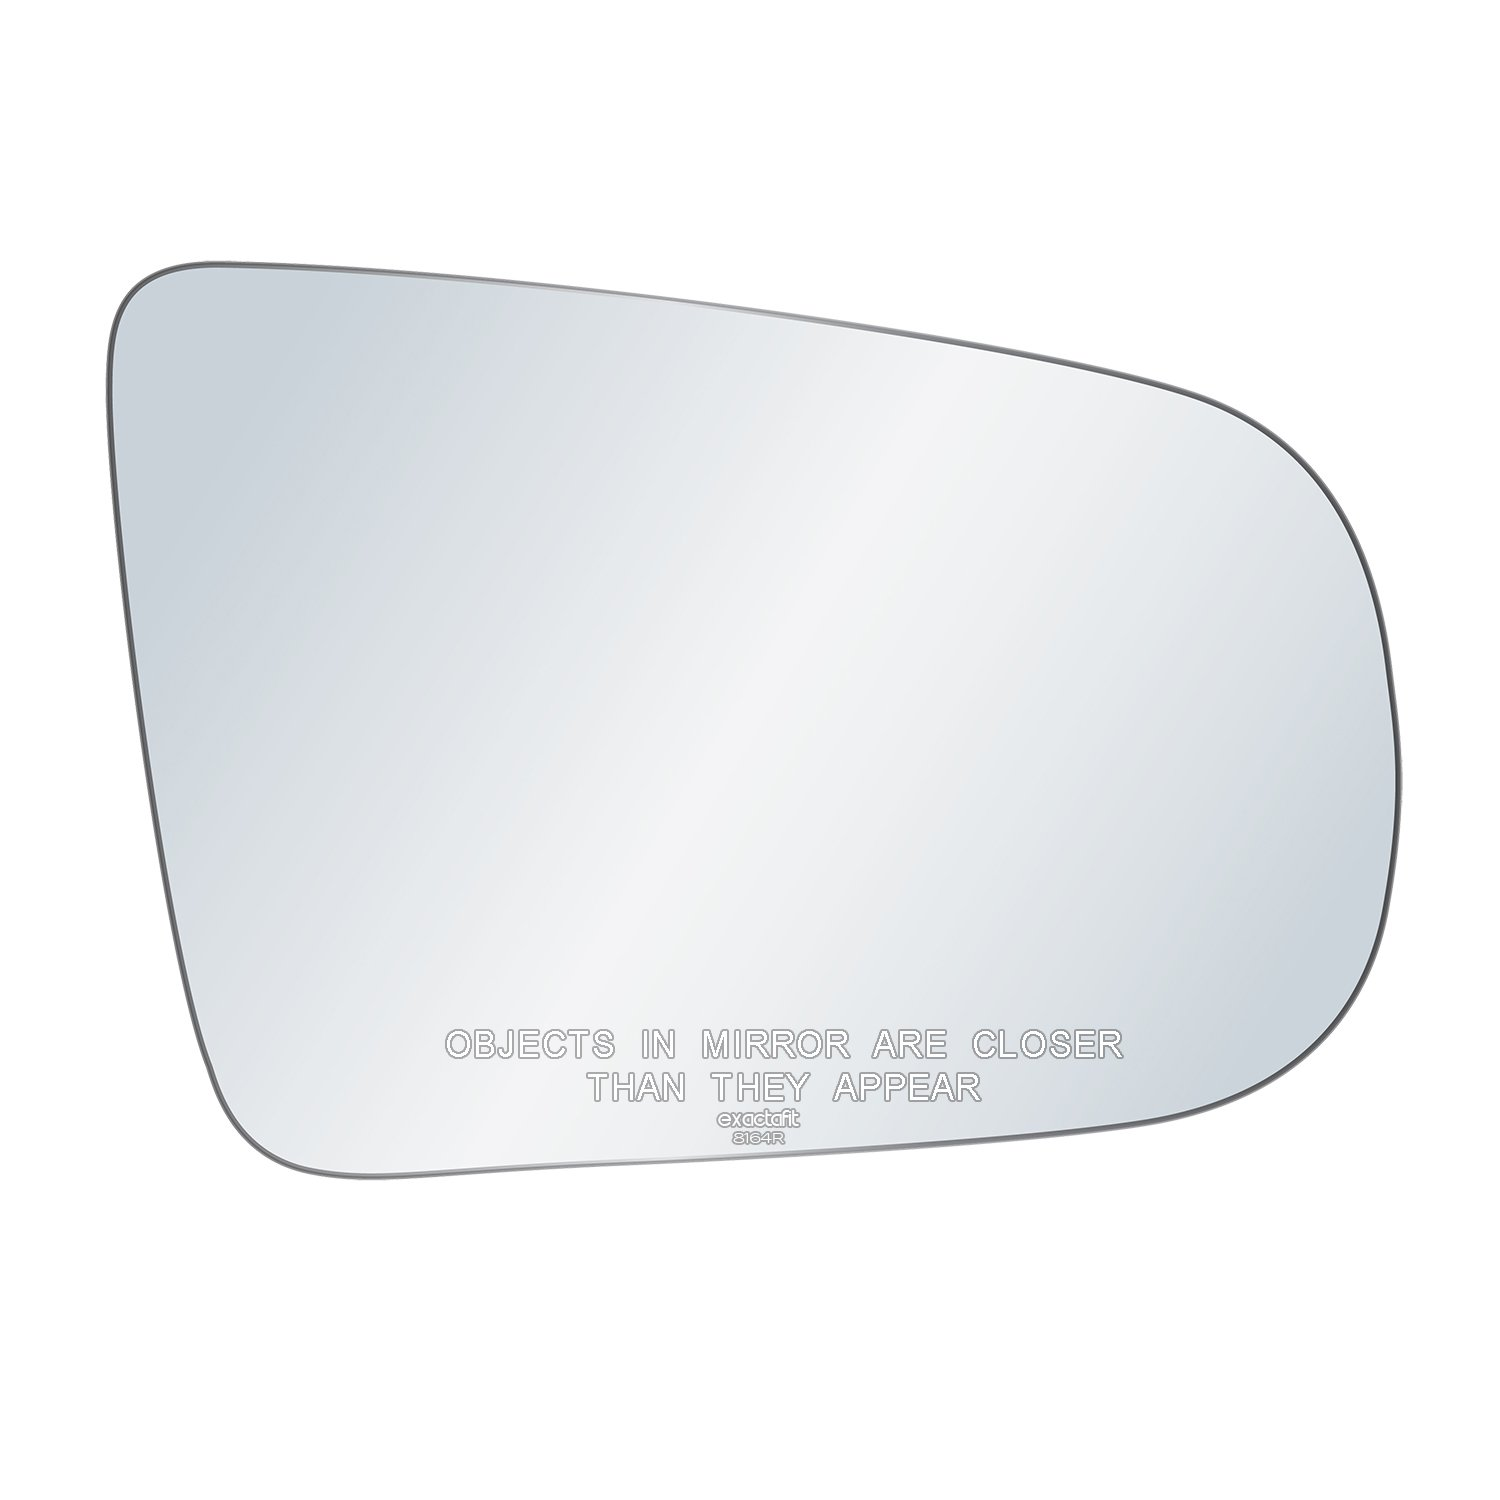 exactafit 8615R Right Passenger Side Mirror Replacement Glass 2004 2005 2006 2007 2008 2009 2010 Ford F-150 F150